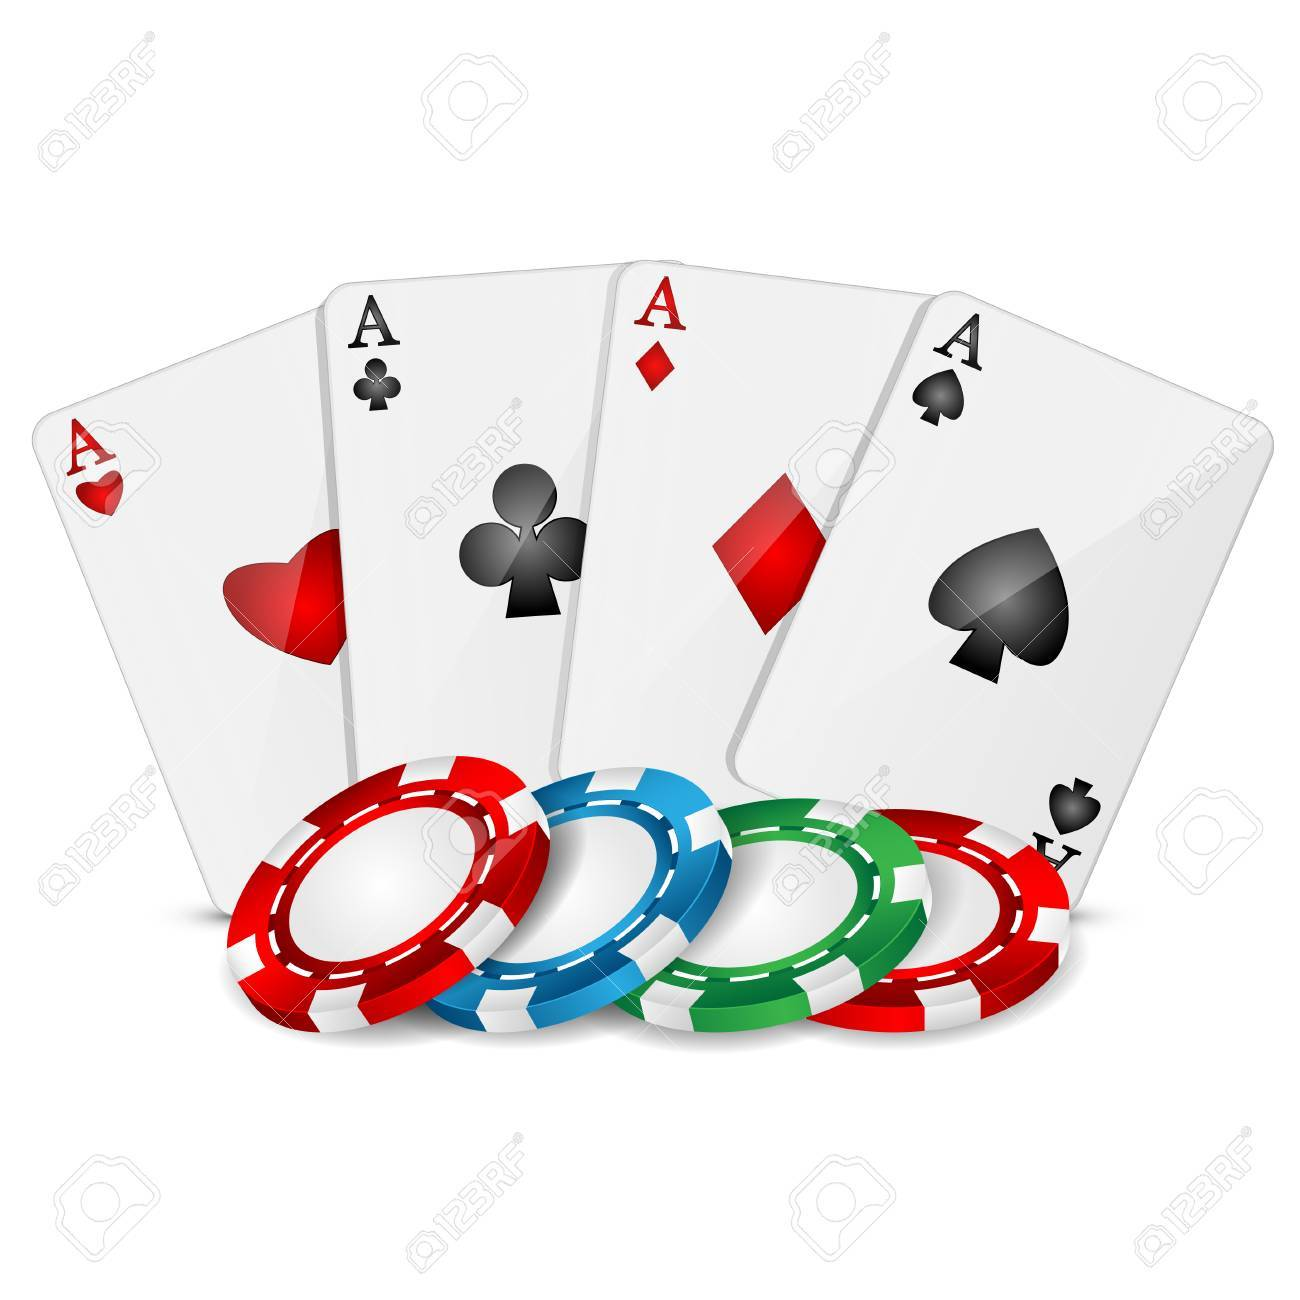 Poker chips cards roulette player professional